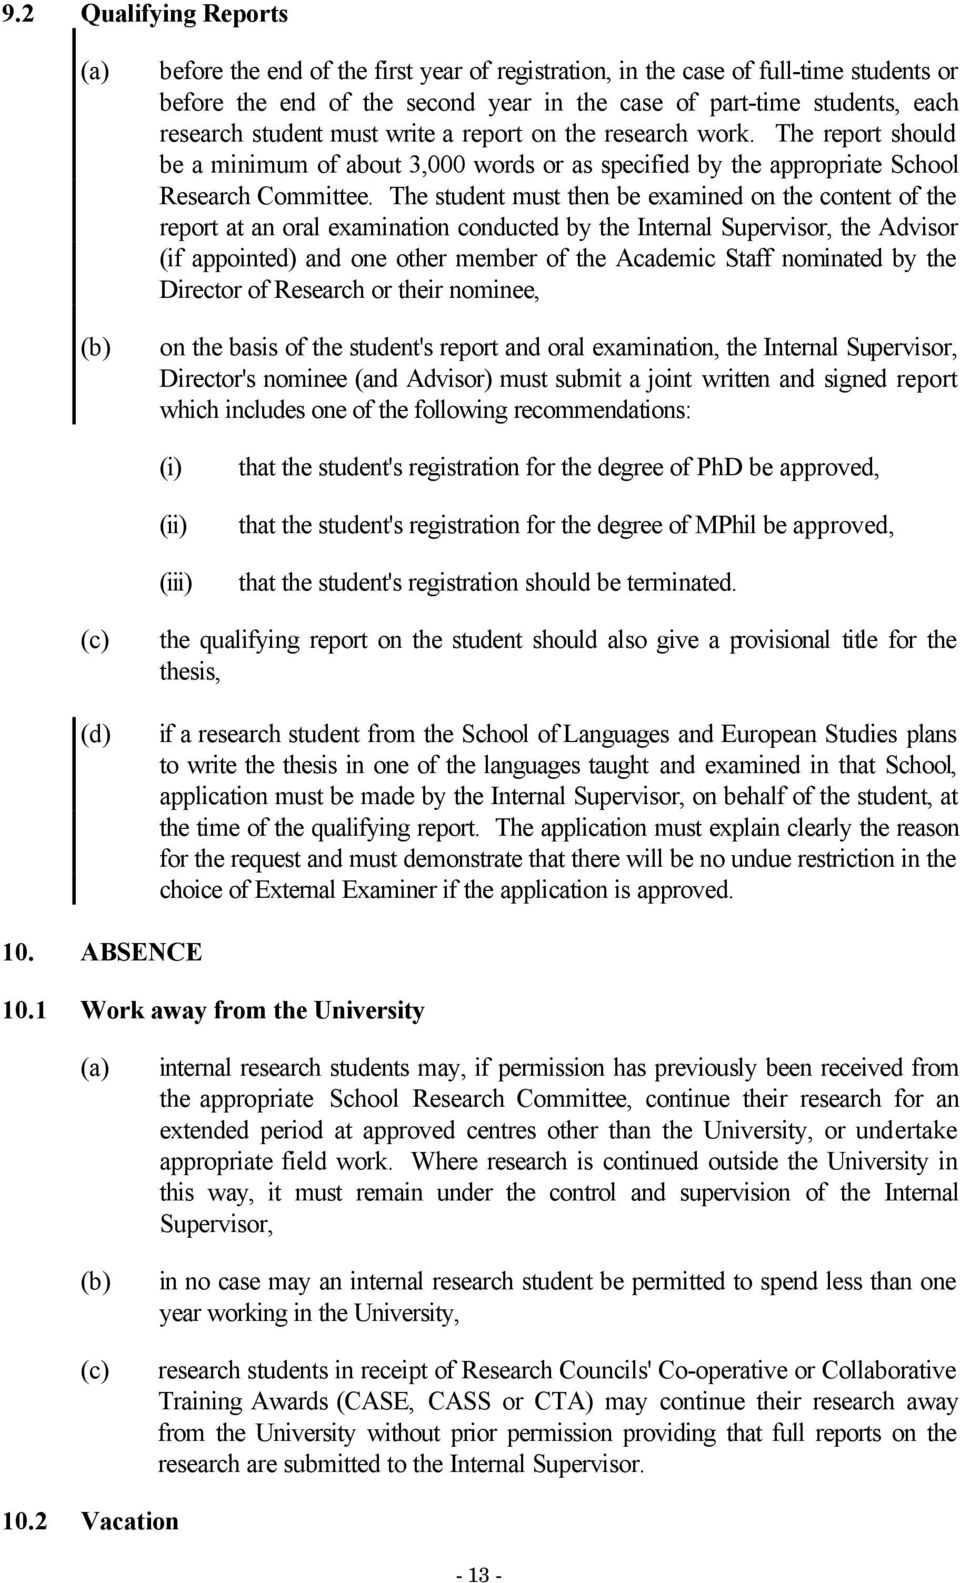 The student must then be examined on the content of the report at an oral examination conducted by the Internal Supervisor, the Advisor (if appointed) and one other member of the Academic Staff